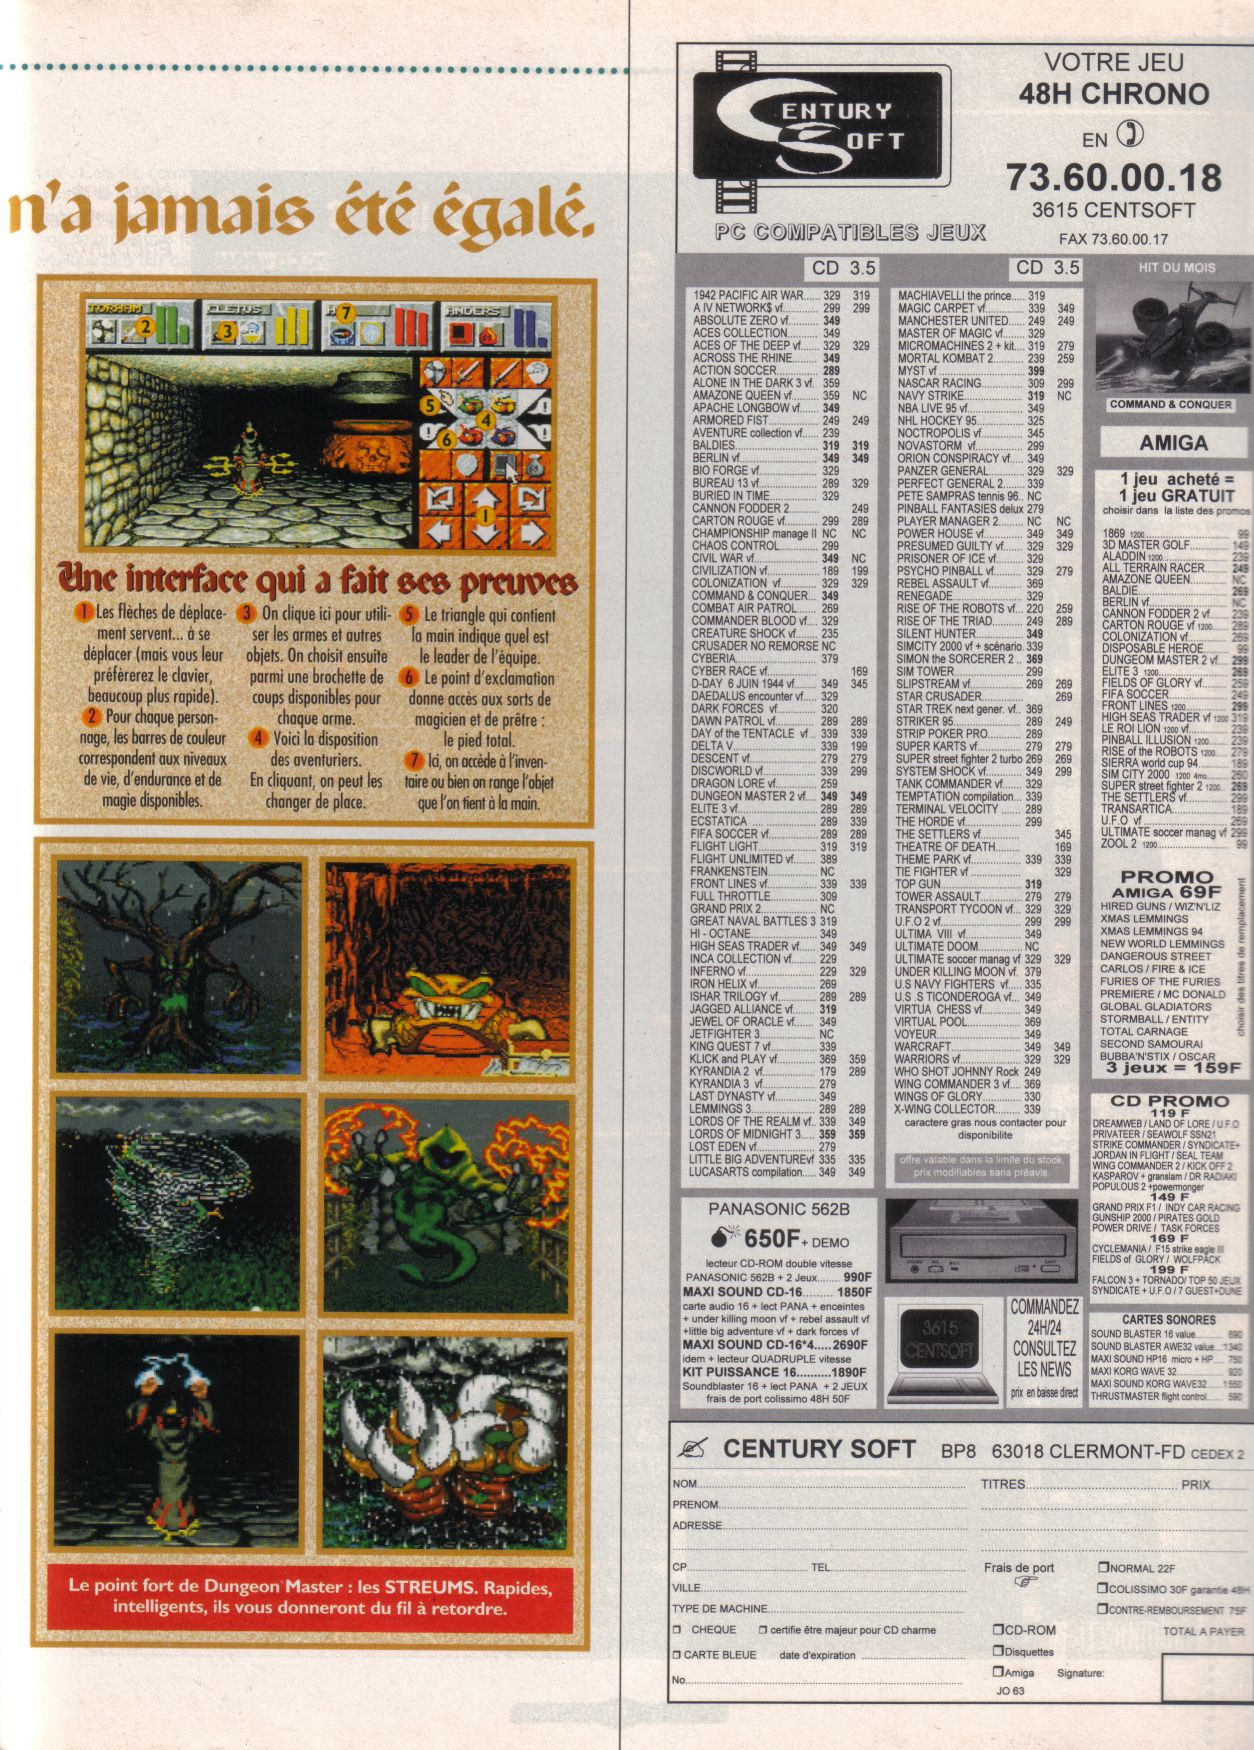 Dungeon Master II for PC Review published in French magazine 'Joystick', Issue #63, September 1995, Page 69